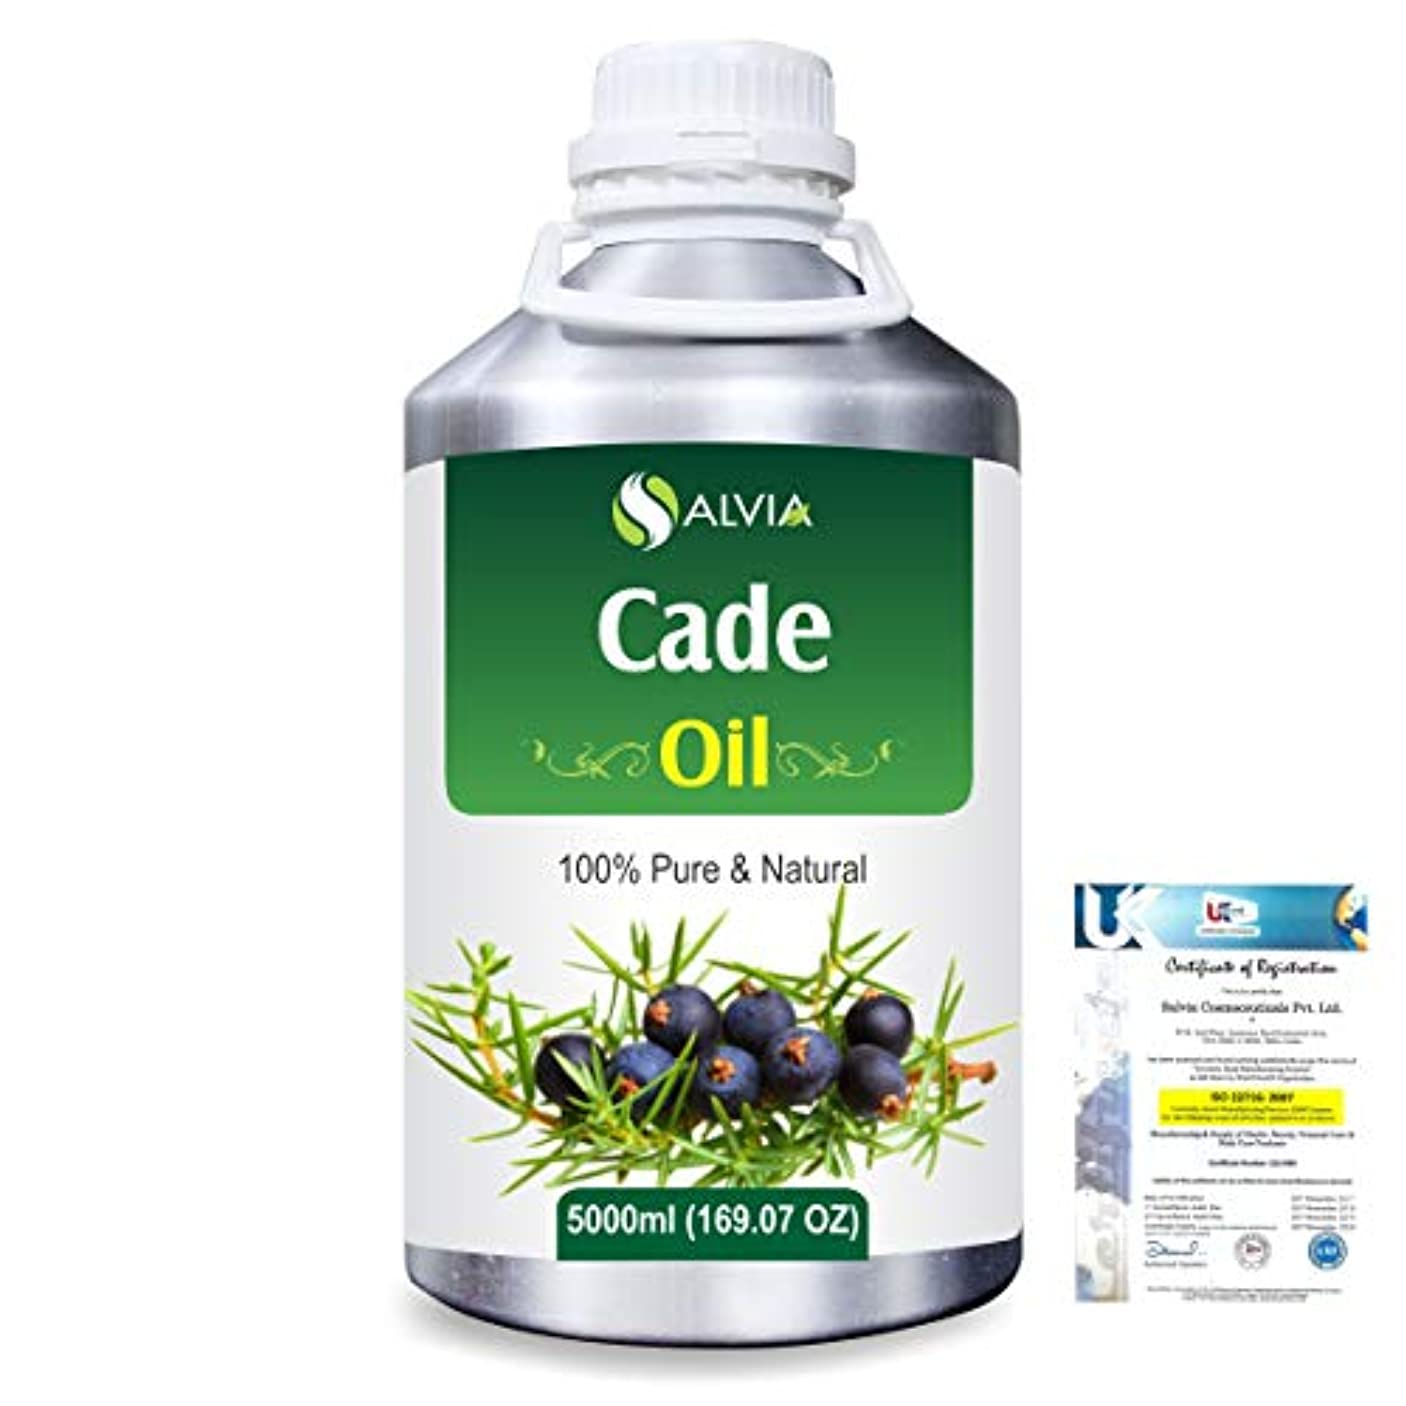 Cade (Juniperus oxycedrus) 100% Natural Pure Essential Oil 5000ml/169fl.oz.